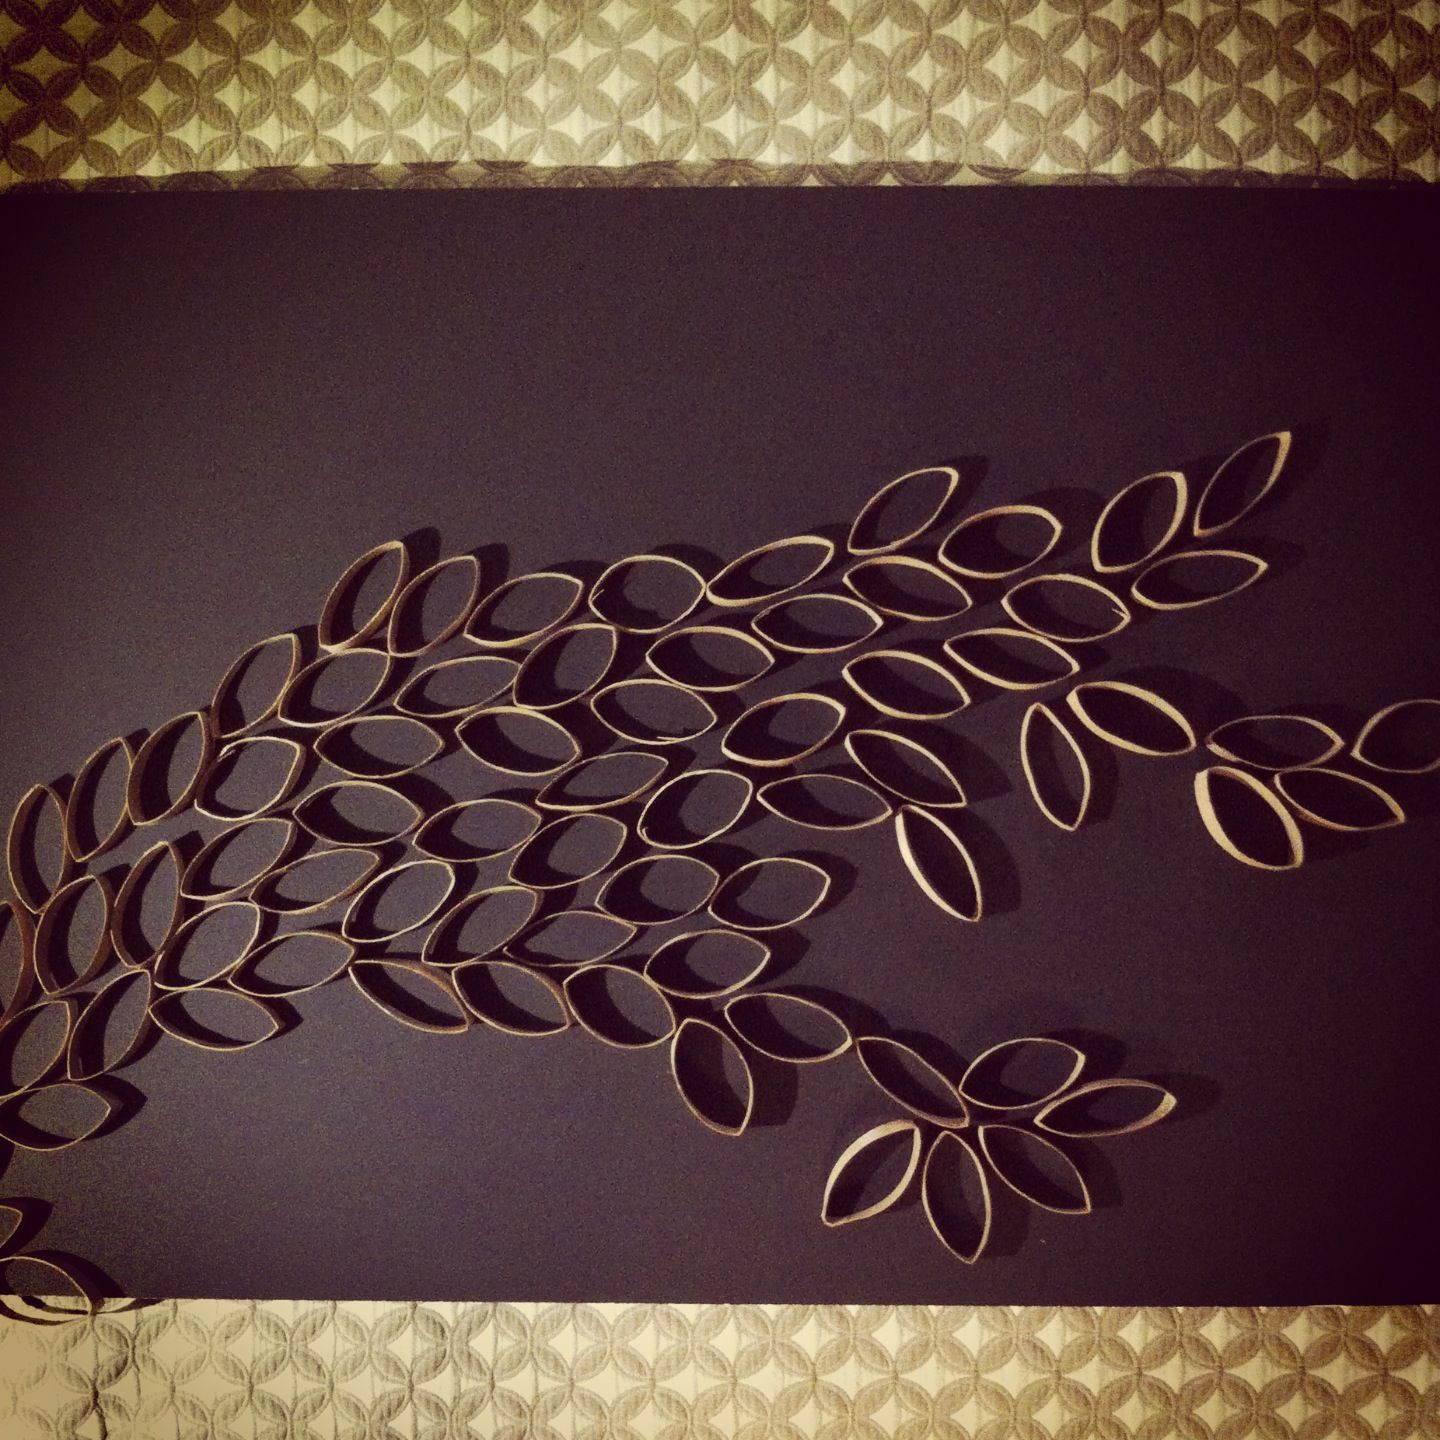 Homemade wall art made by using recycled paper towel rolls